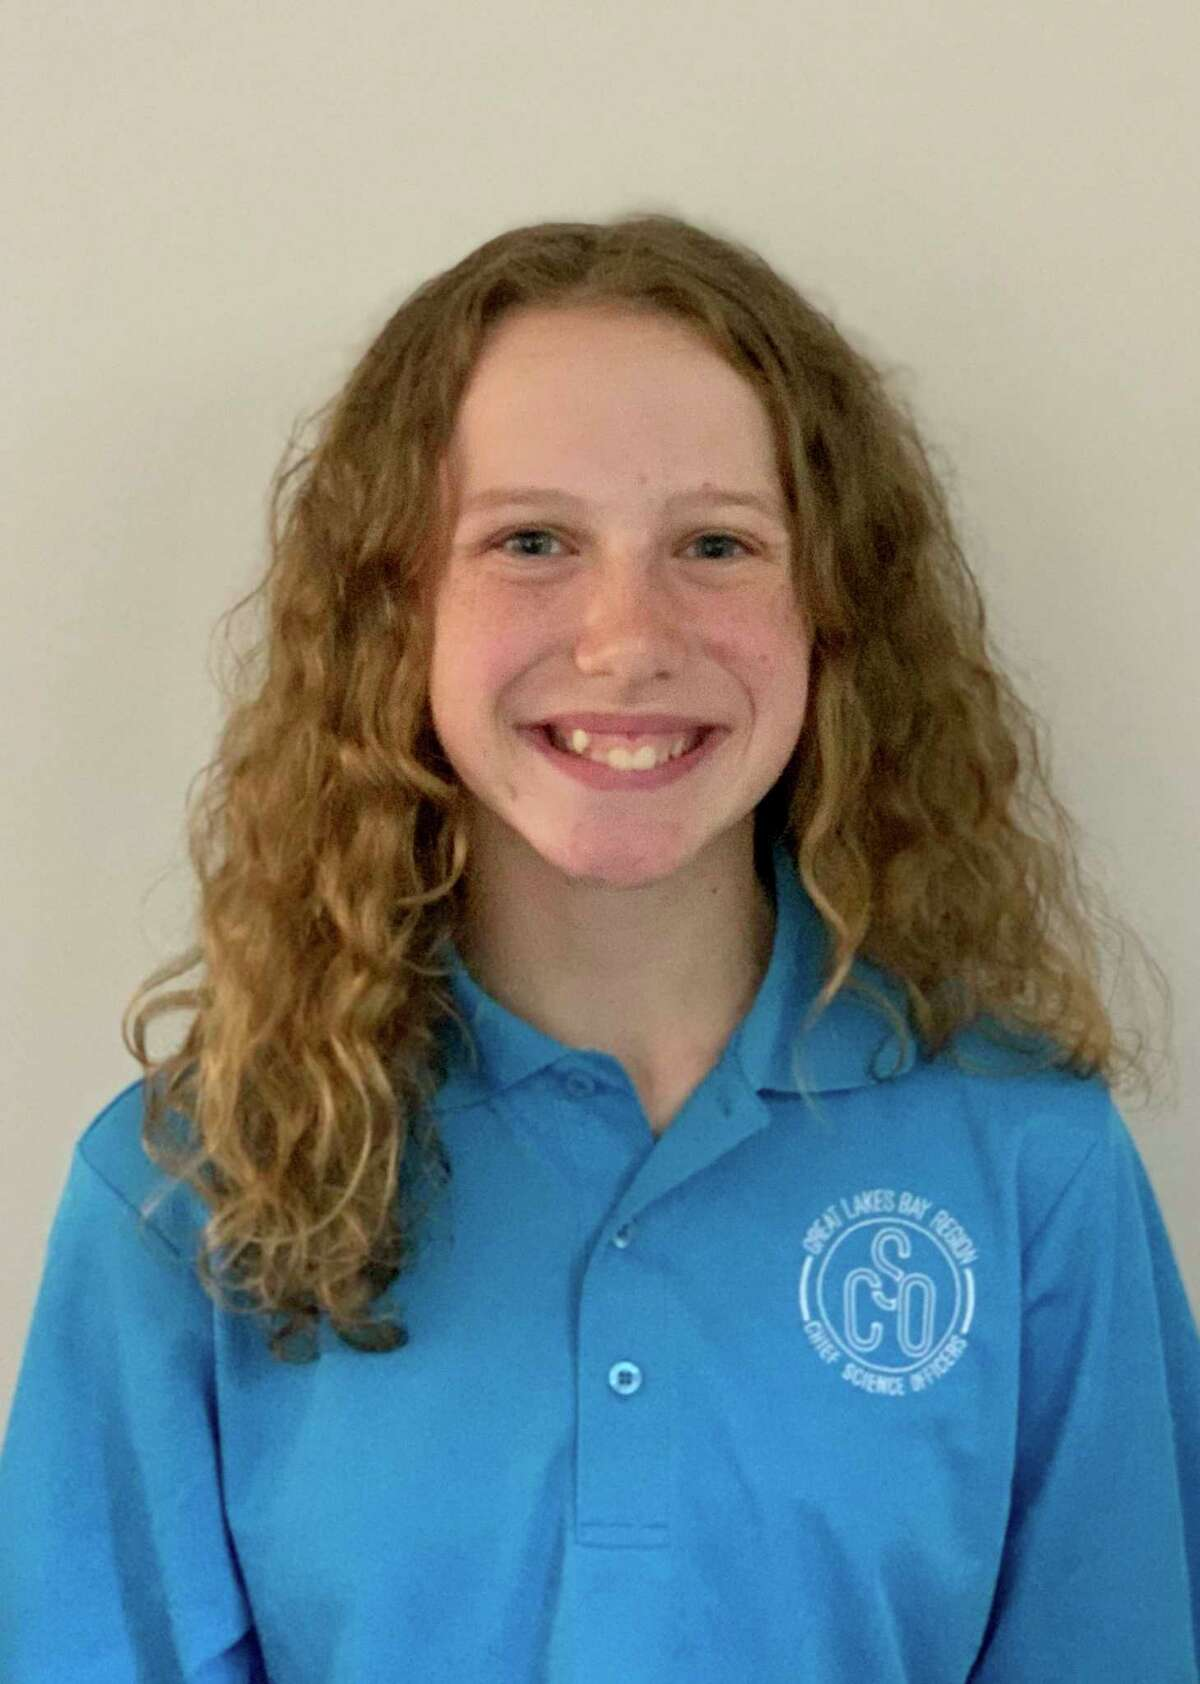 Norah Lacher is an eighth-grader at Jefferson Middle School. (Photo provided)